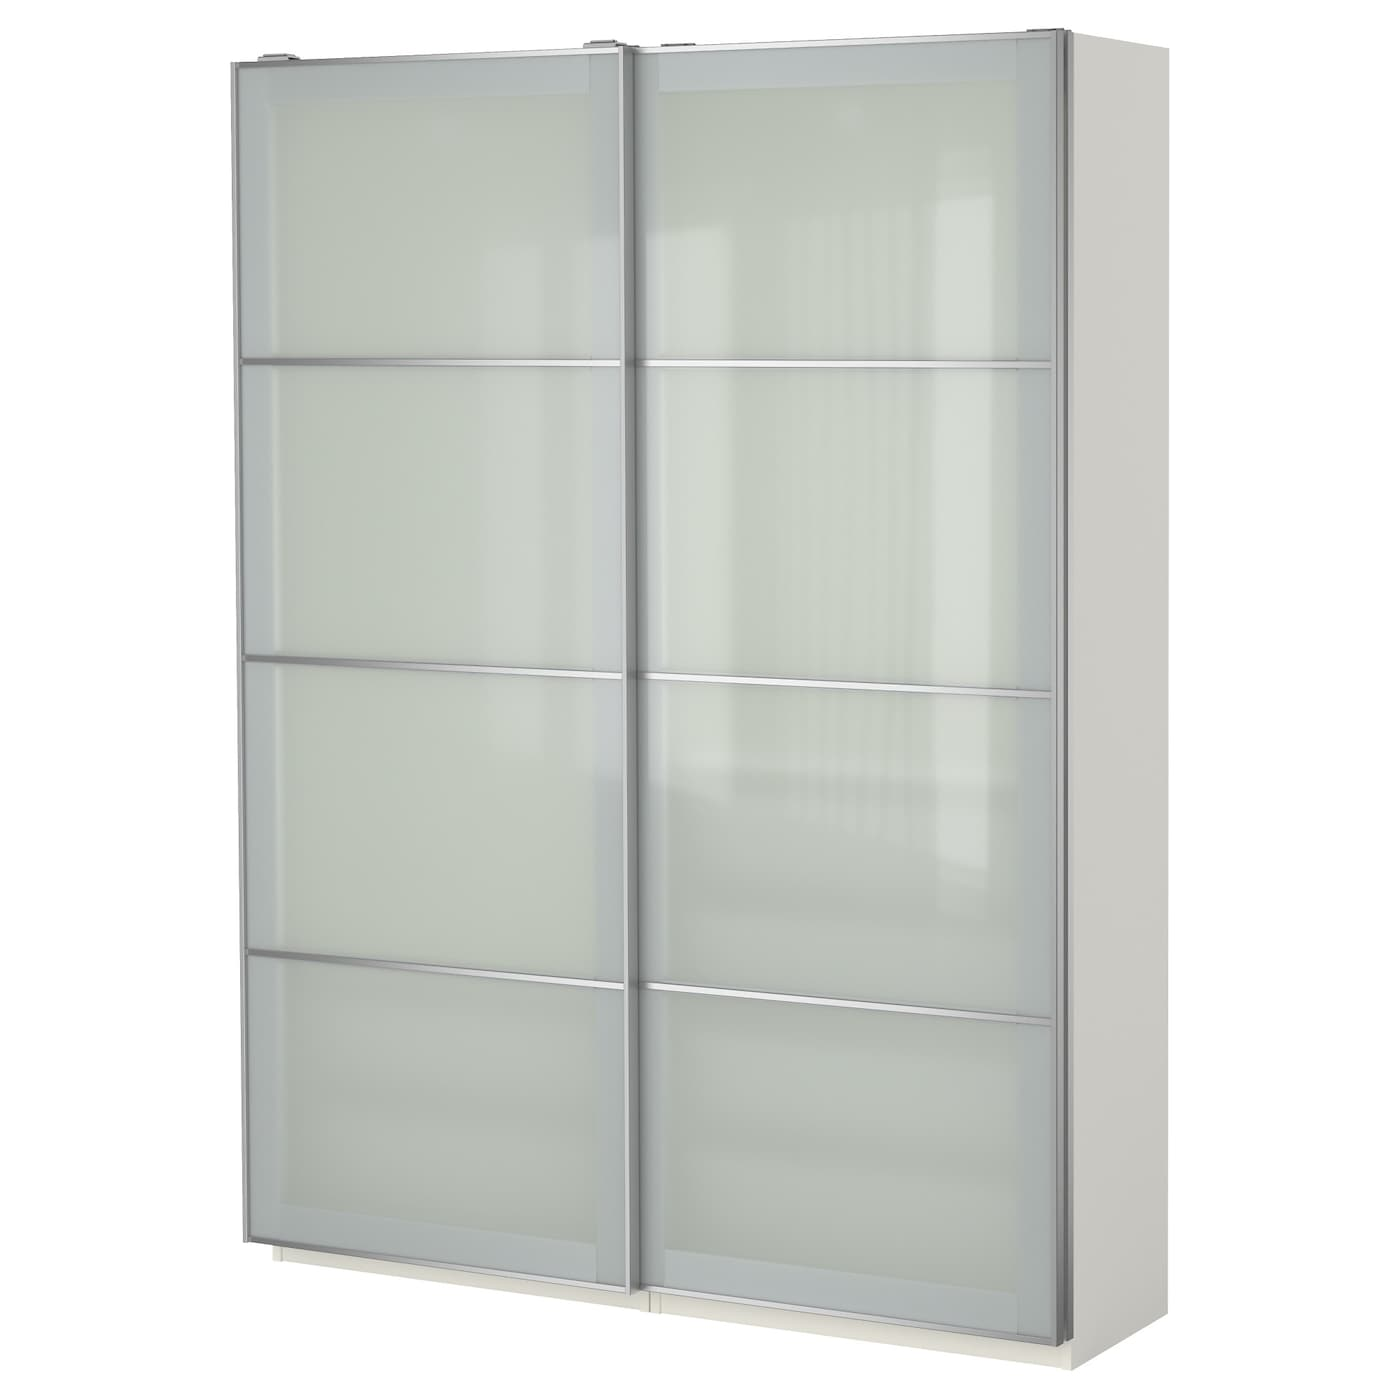 pax wardrobe white sekken frosted glass 150x44x201 cm ikea. Black Bedroom Furniture Sets. Home Design Ideas